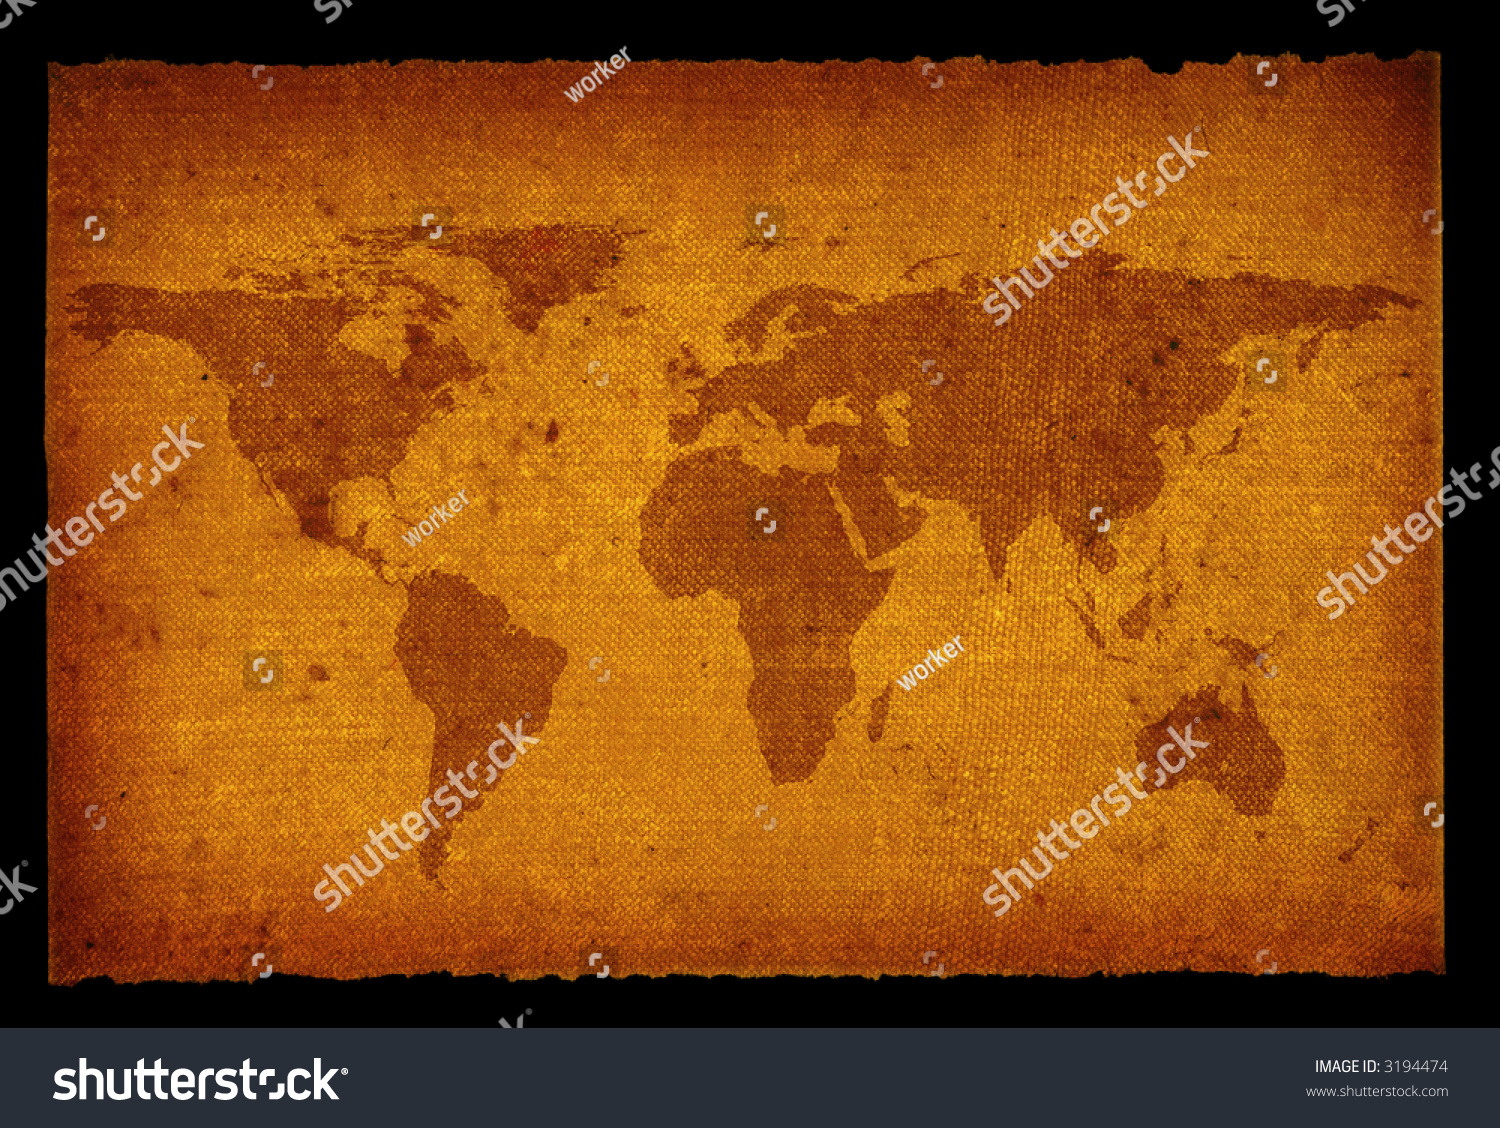 Old grunge world map isolated on stock photo 3194474 shutterstock old grunge world map isolated on black background gumiabroncs Gallery